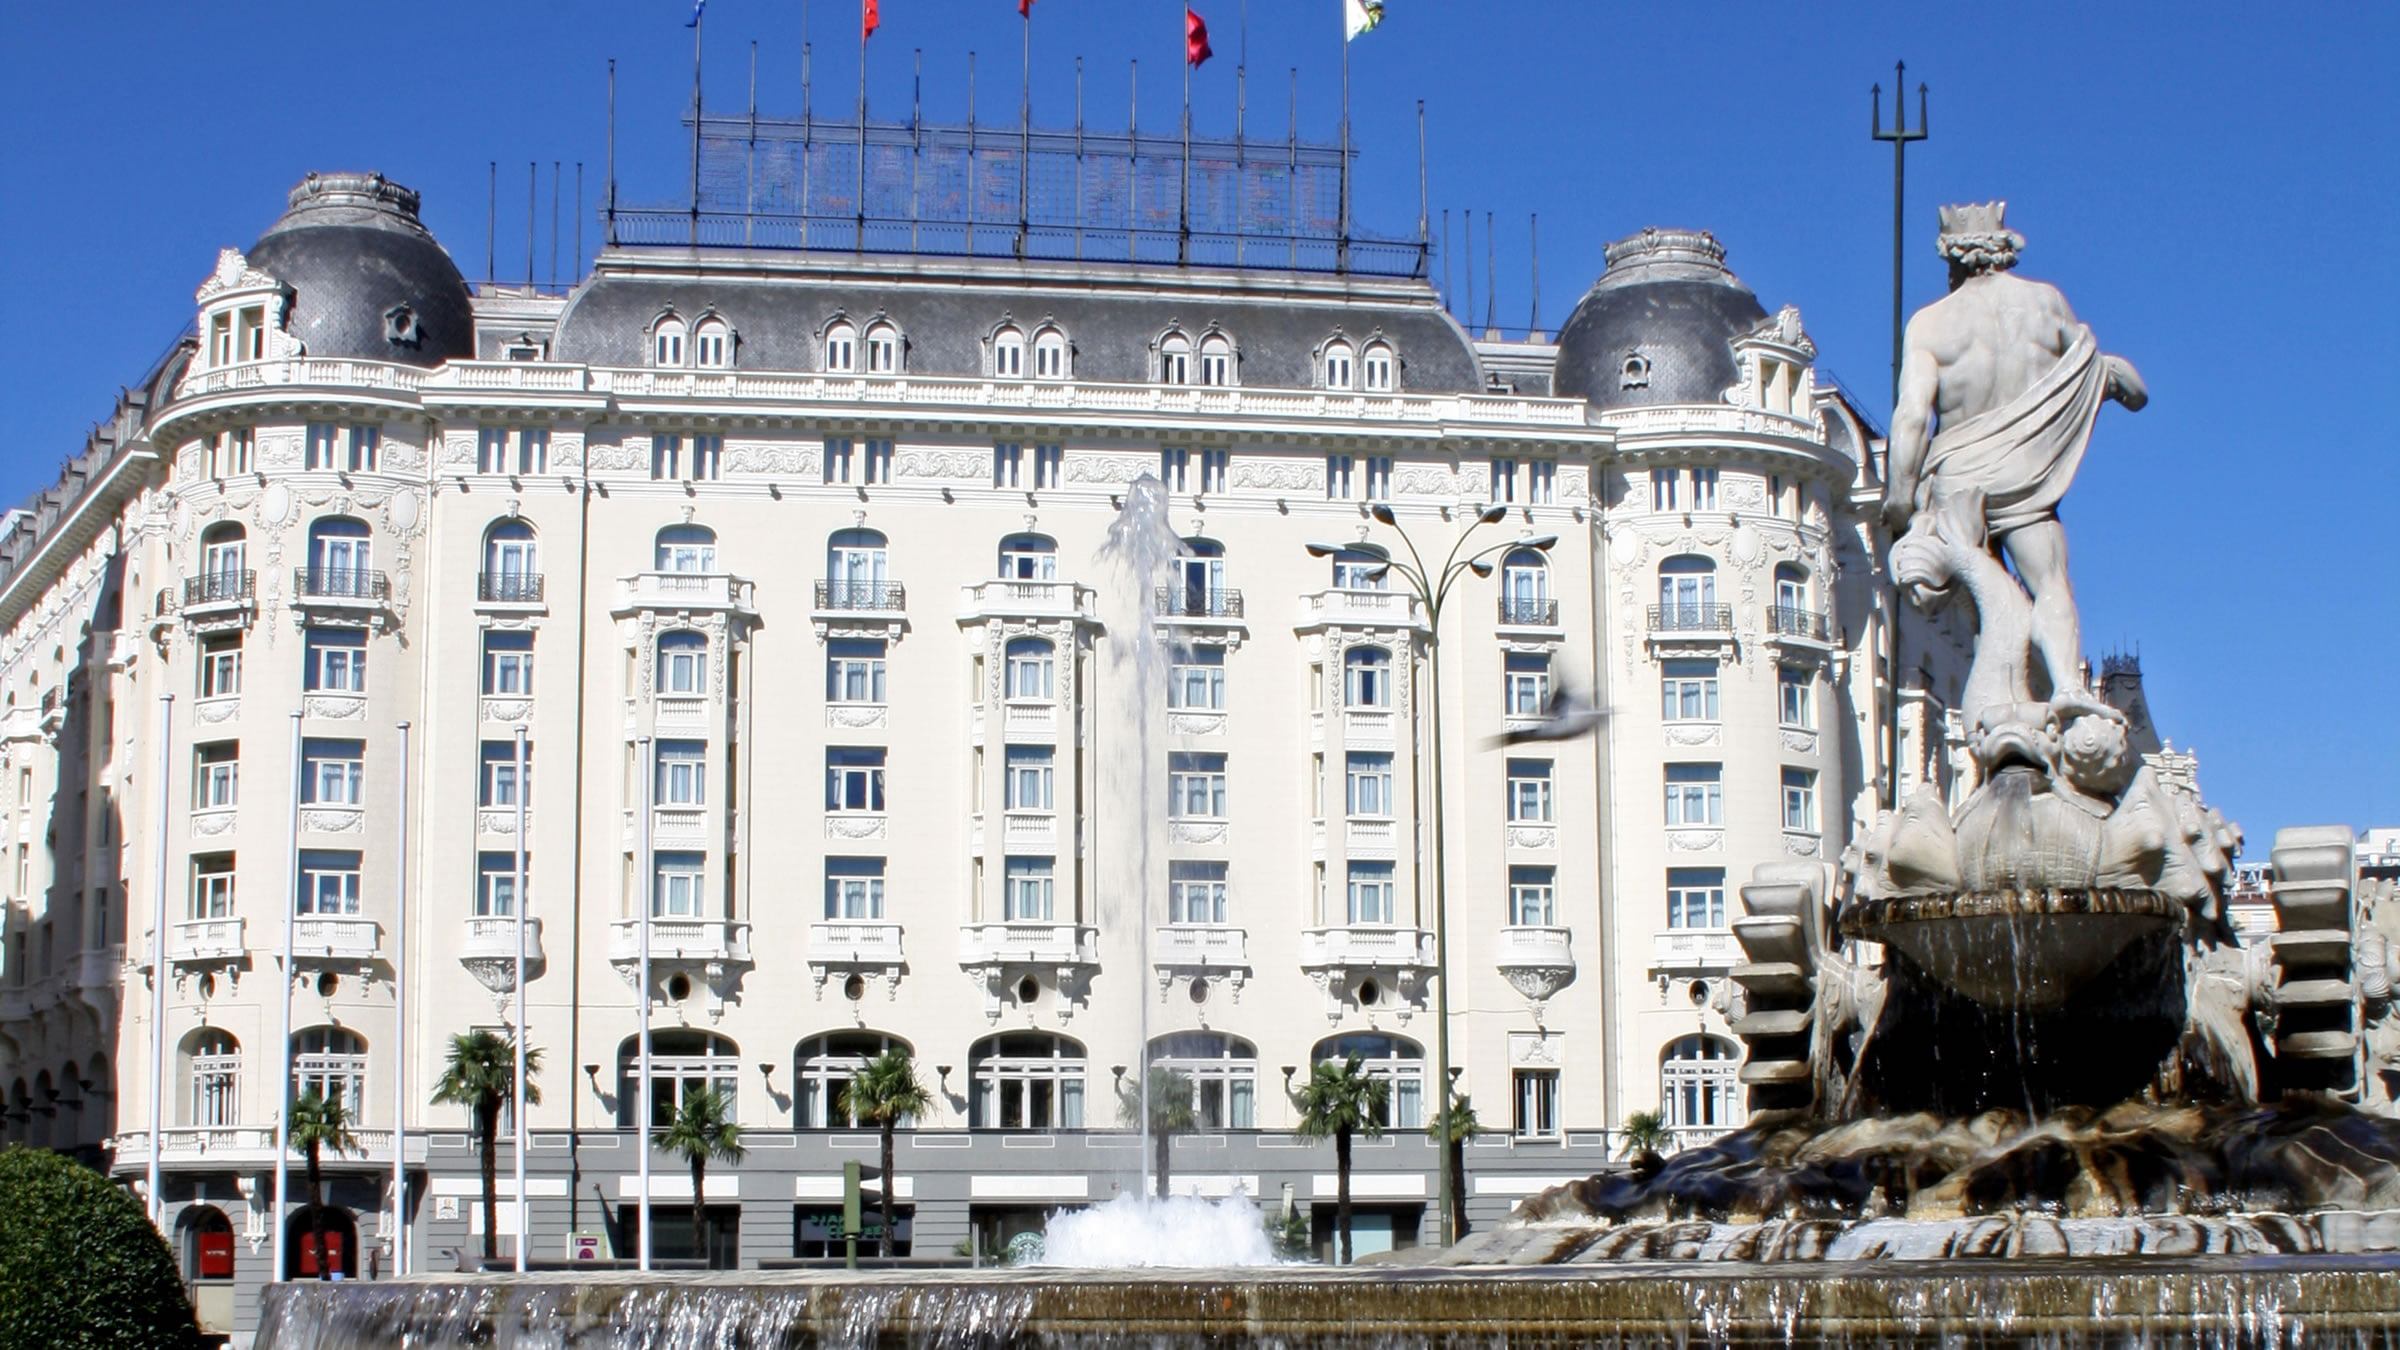 Hotel the westin palace frente a fuente de neptuno madrid - Hotel only you en madrid ...